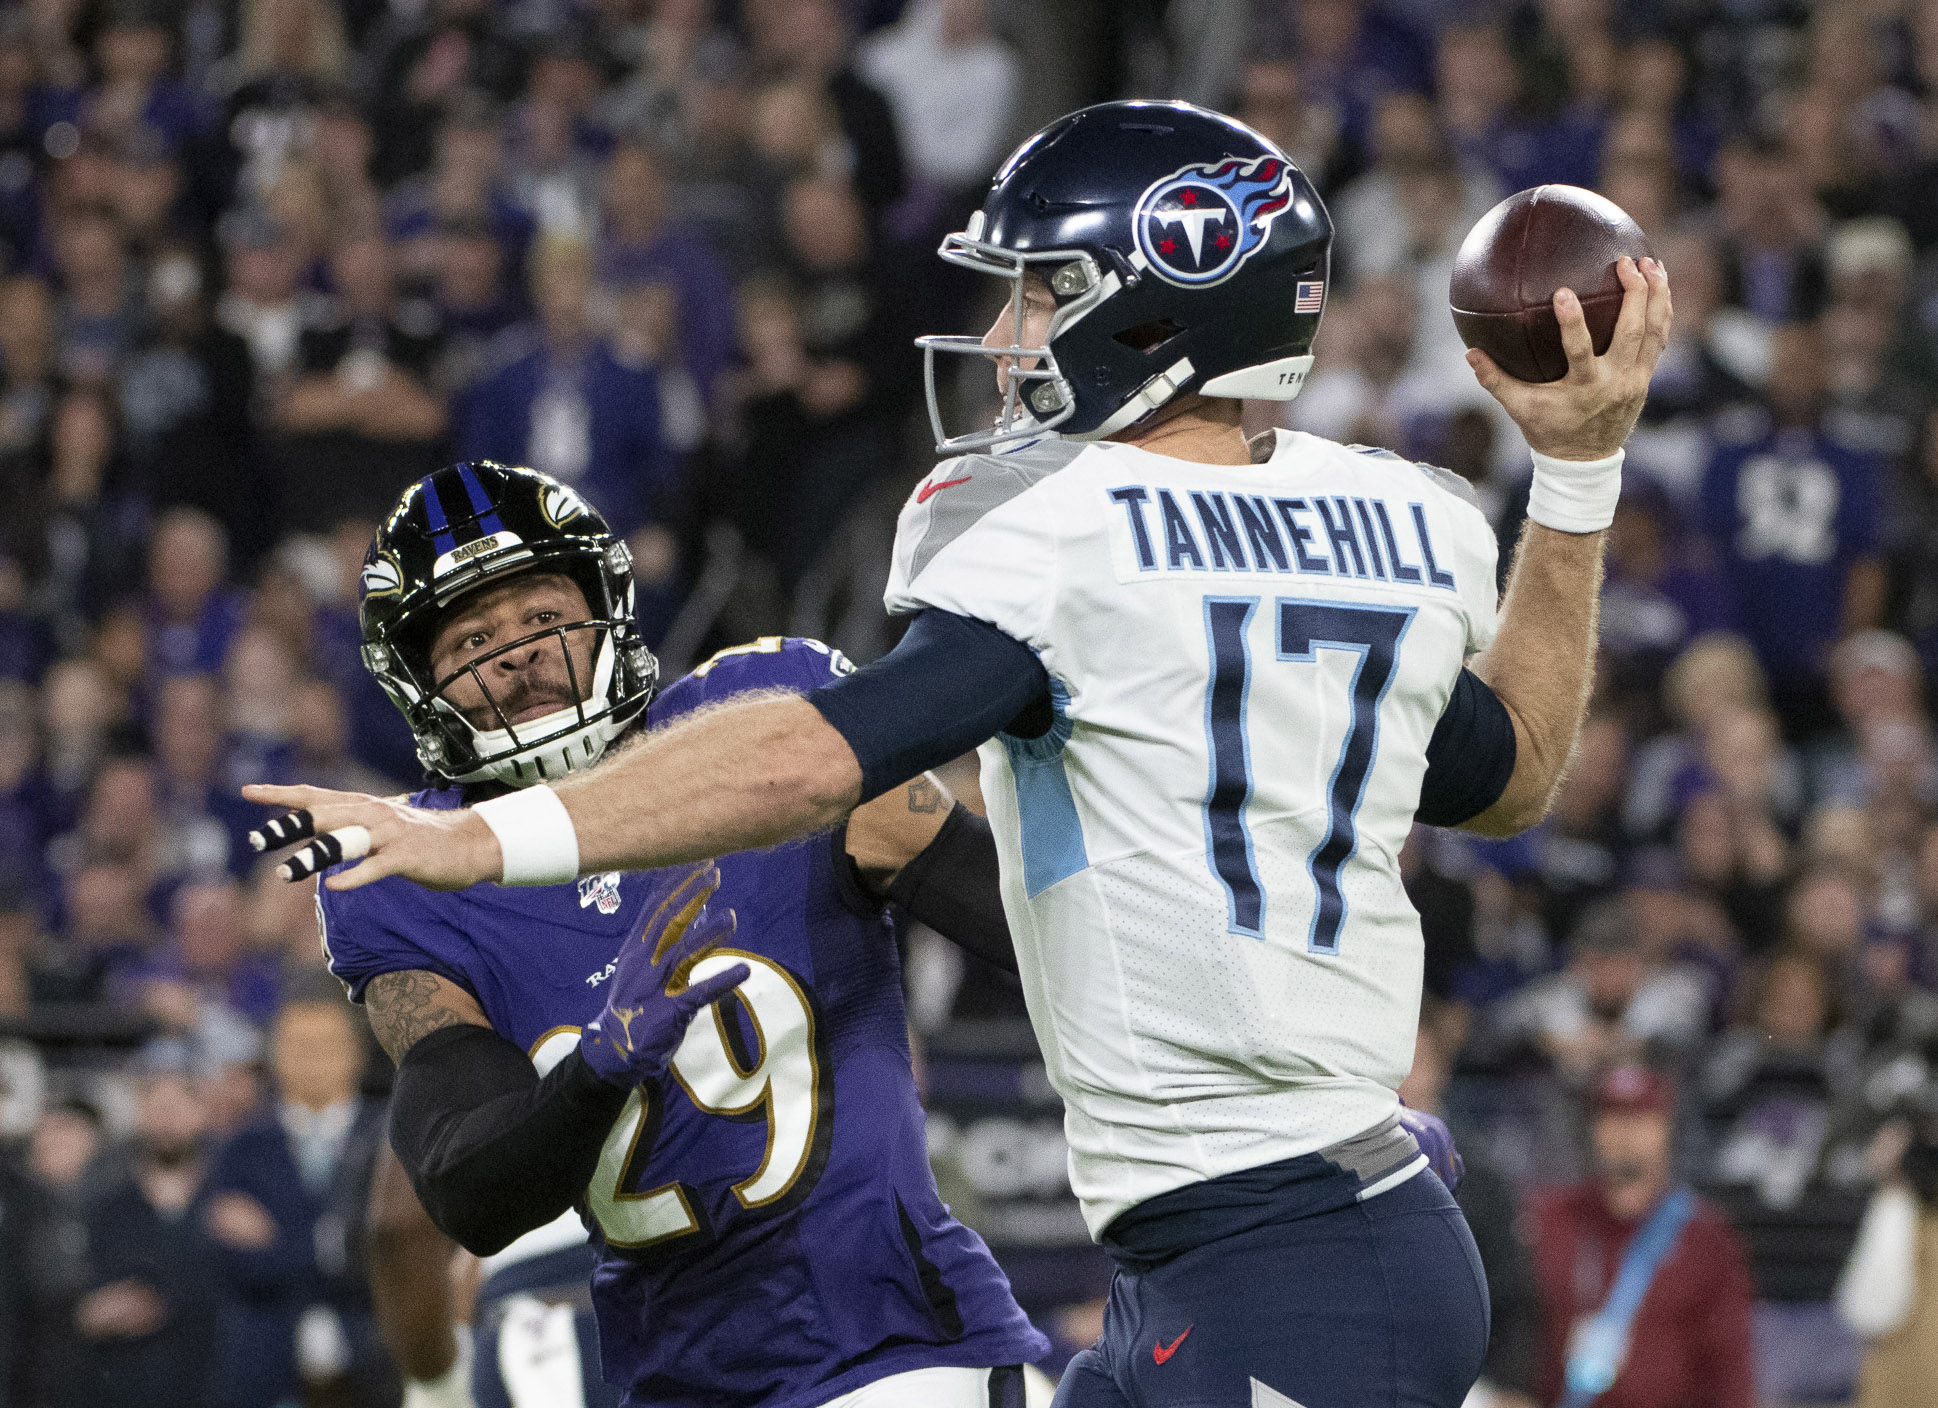 Ravens' turbulent flight continues in loss to Titans, 30-24